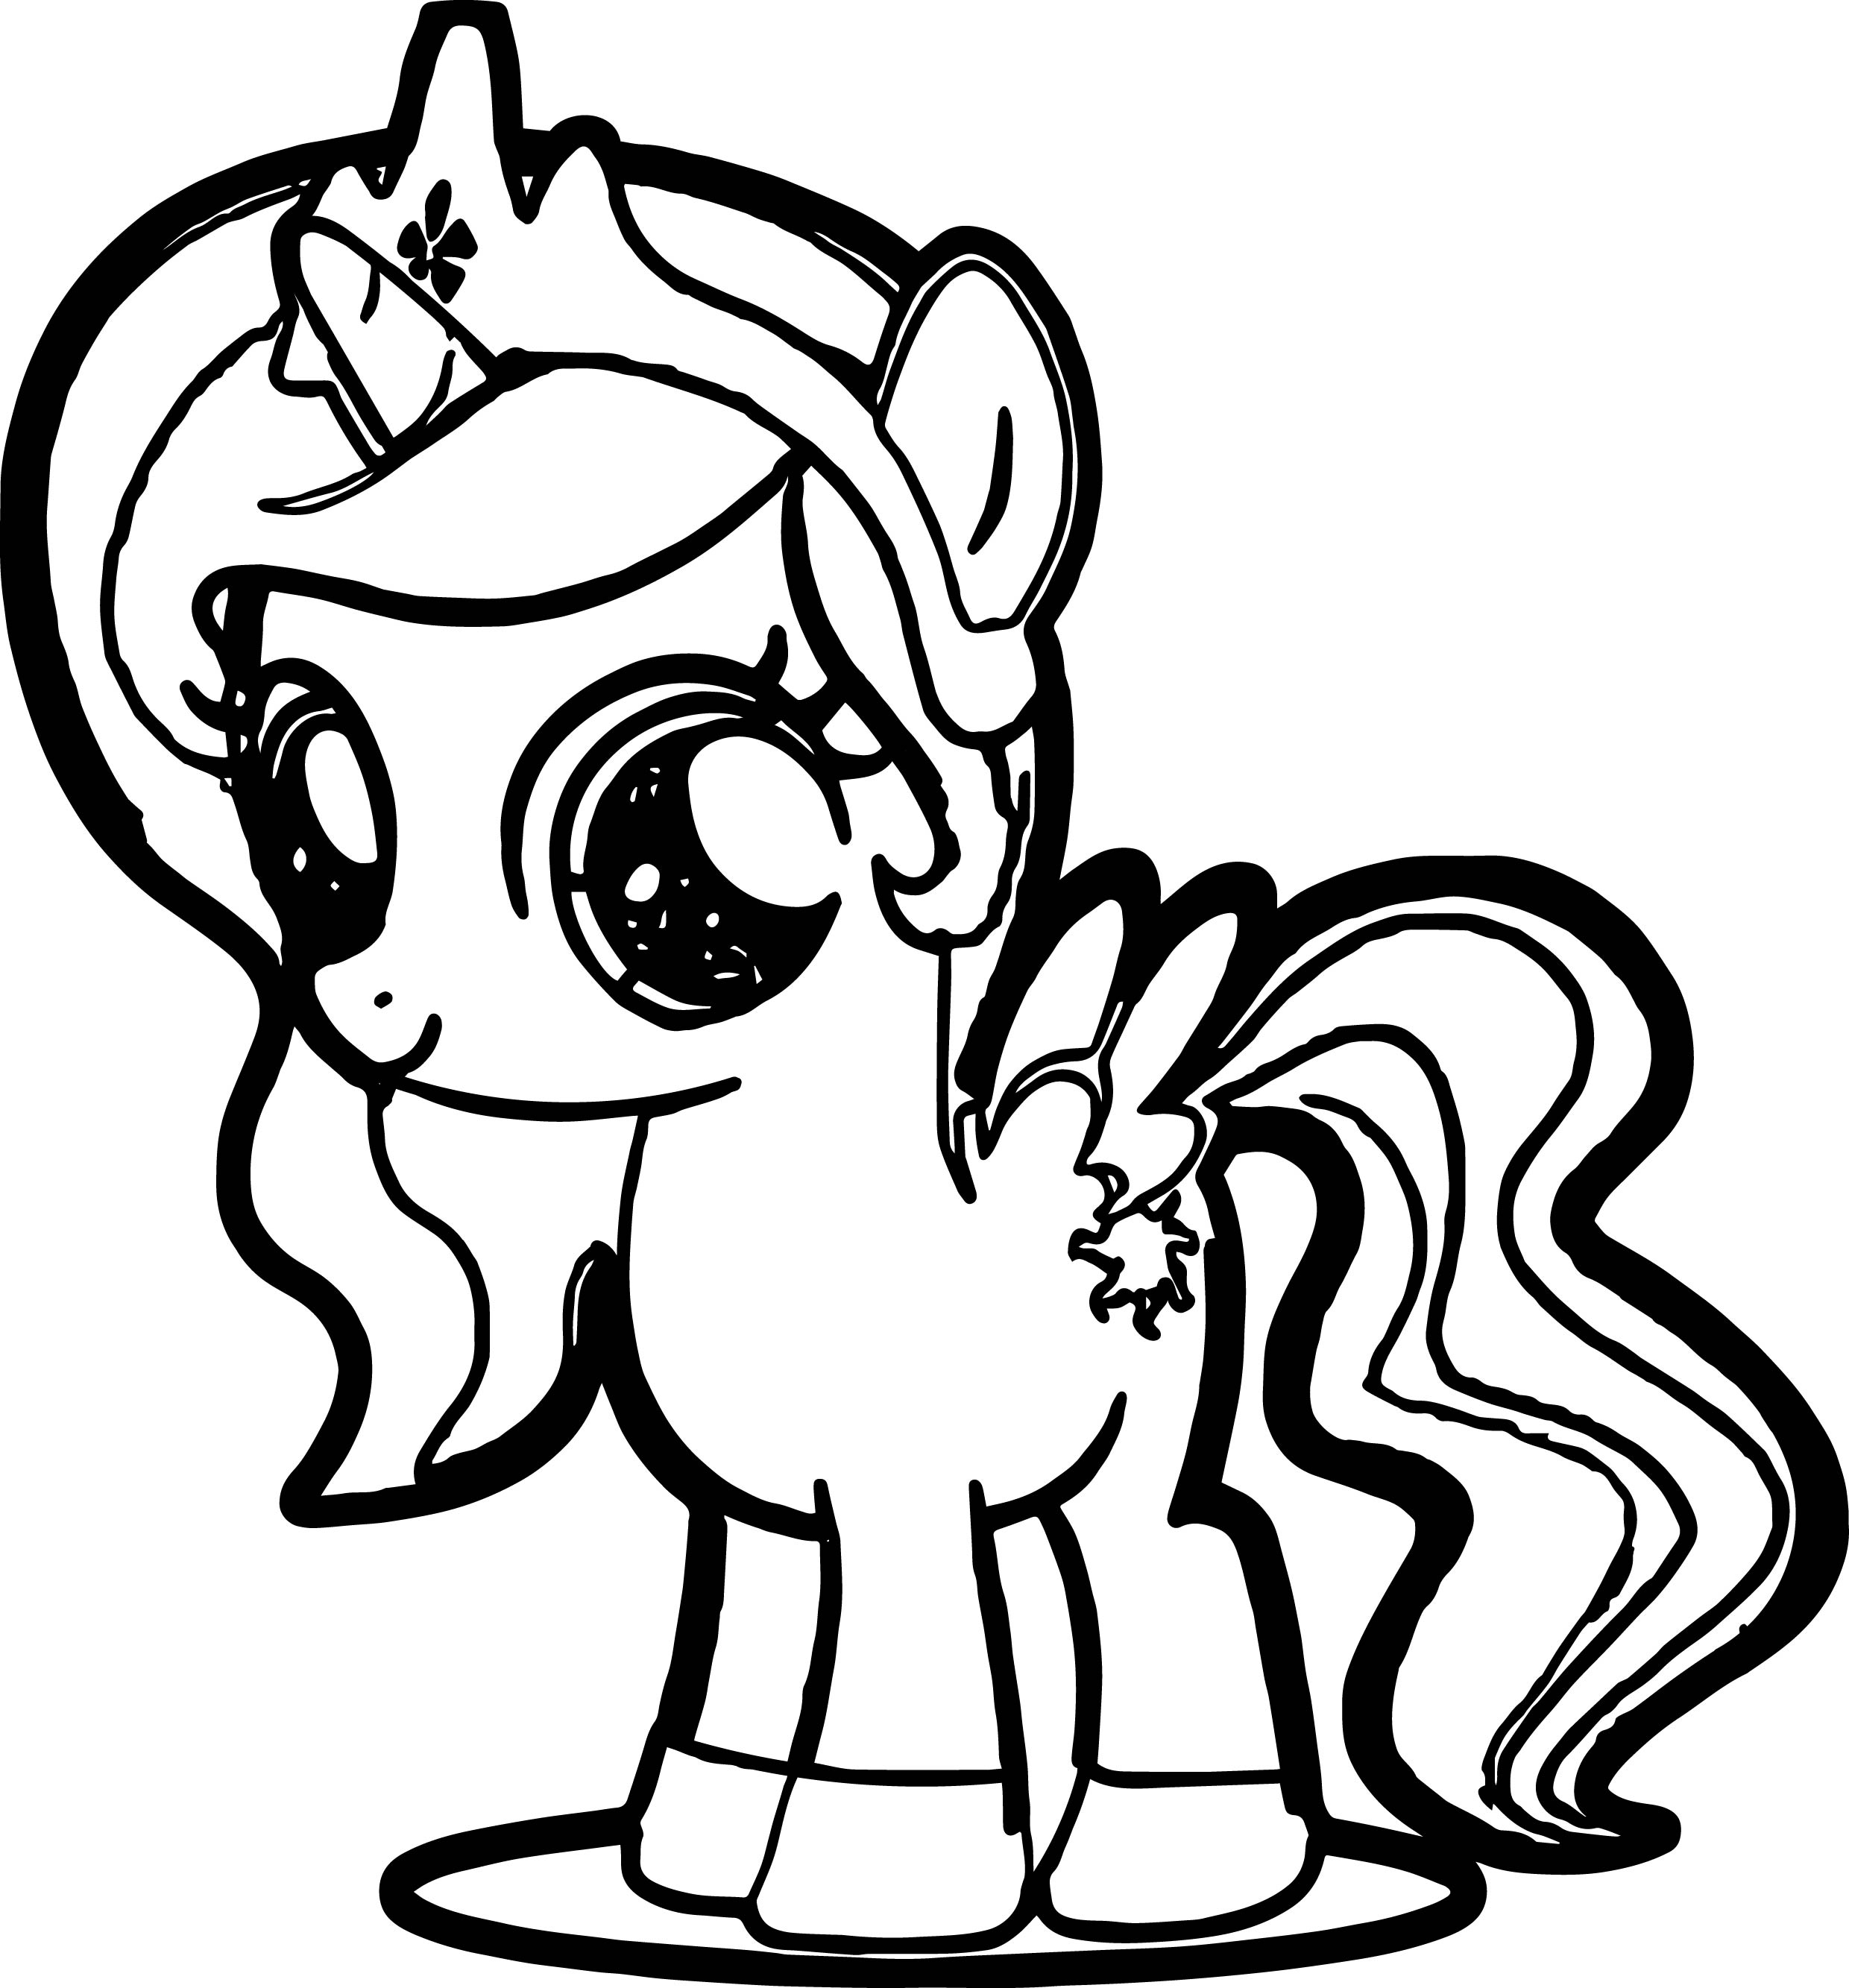 printable my little pony my little pony coloring pages pdf through the thousands printable little pony my